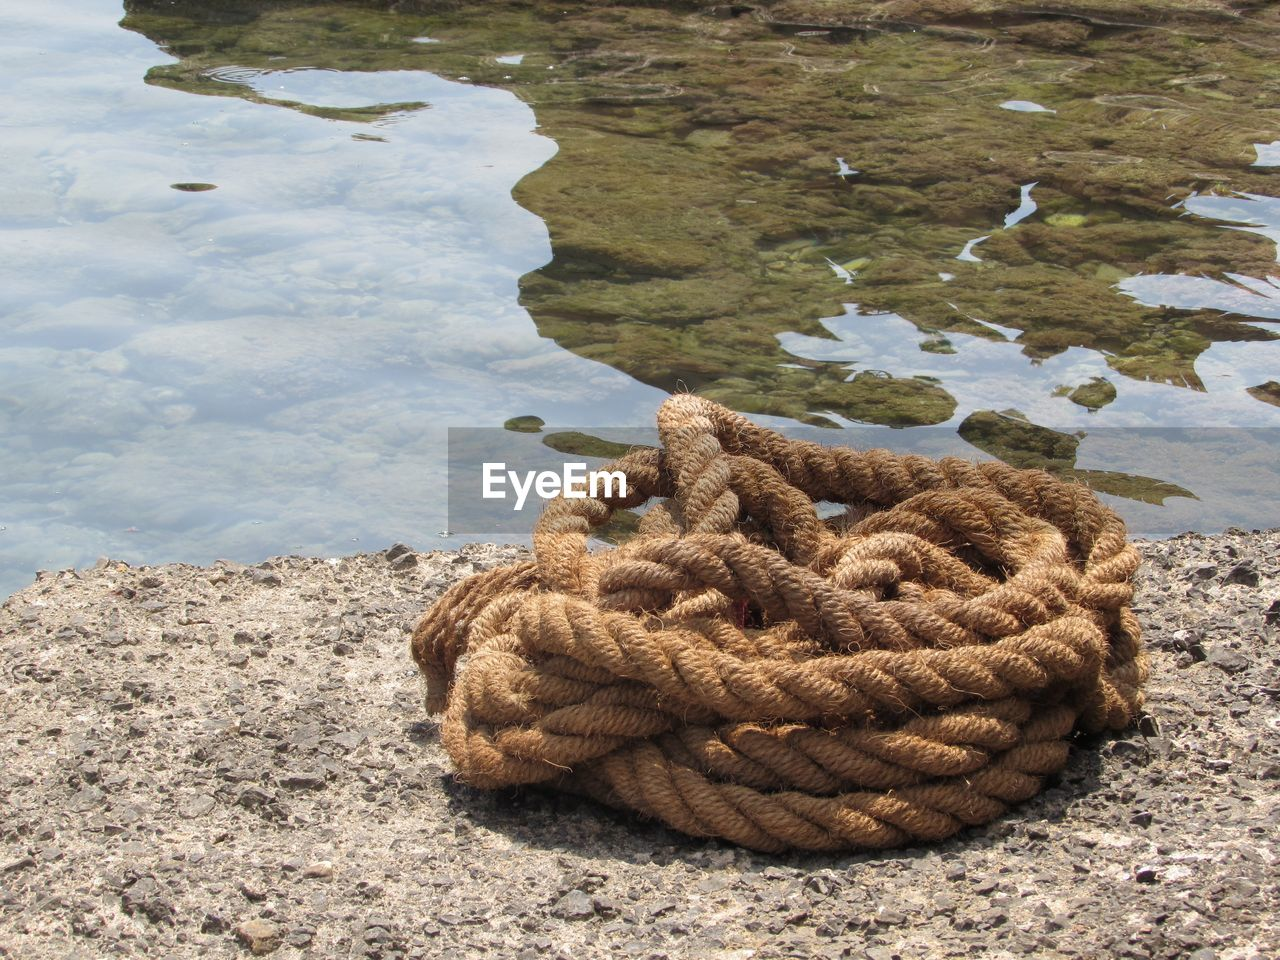 water, nature, day, no people, high angle view, lake, close-up, outdoors, reflection, beach, beauty in nature, tranquility, solid, stack, rope, rock, sunlight, focus on foreground, strength, tangled